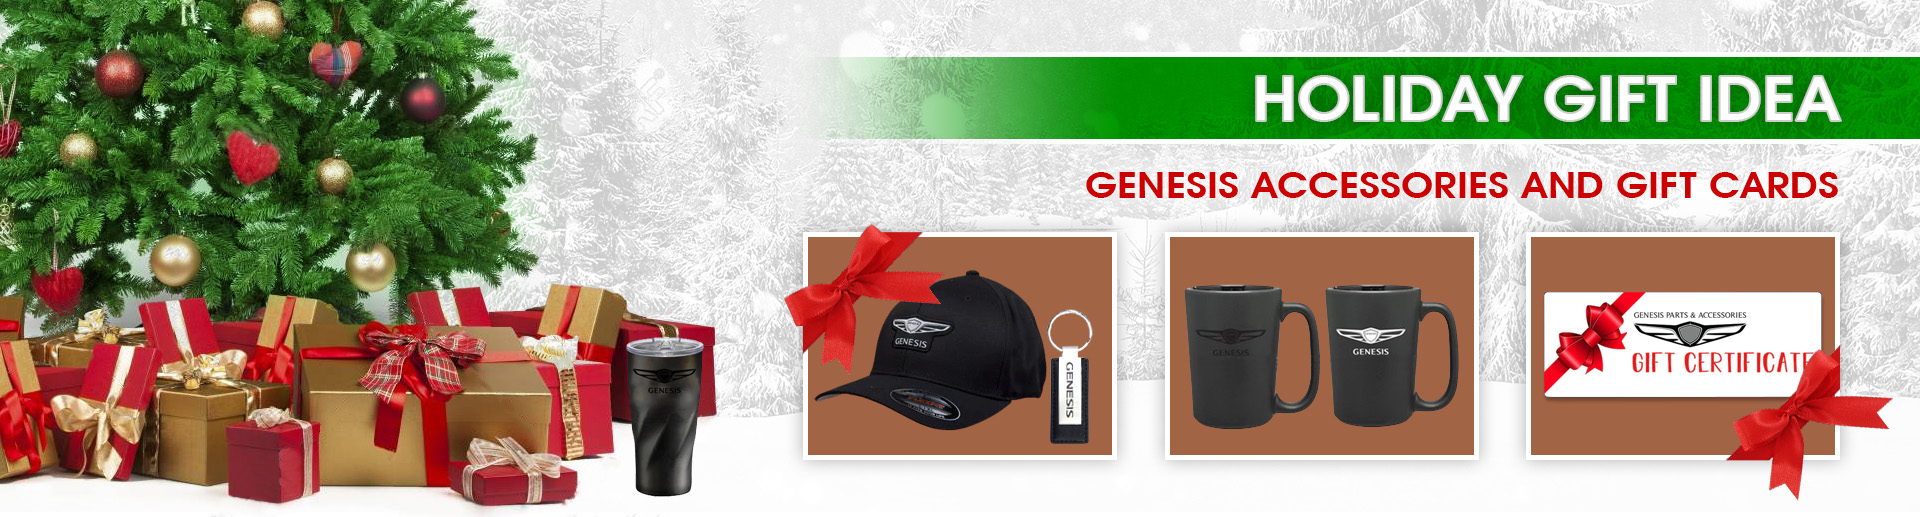 Genesis Holiday Gift Guide